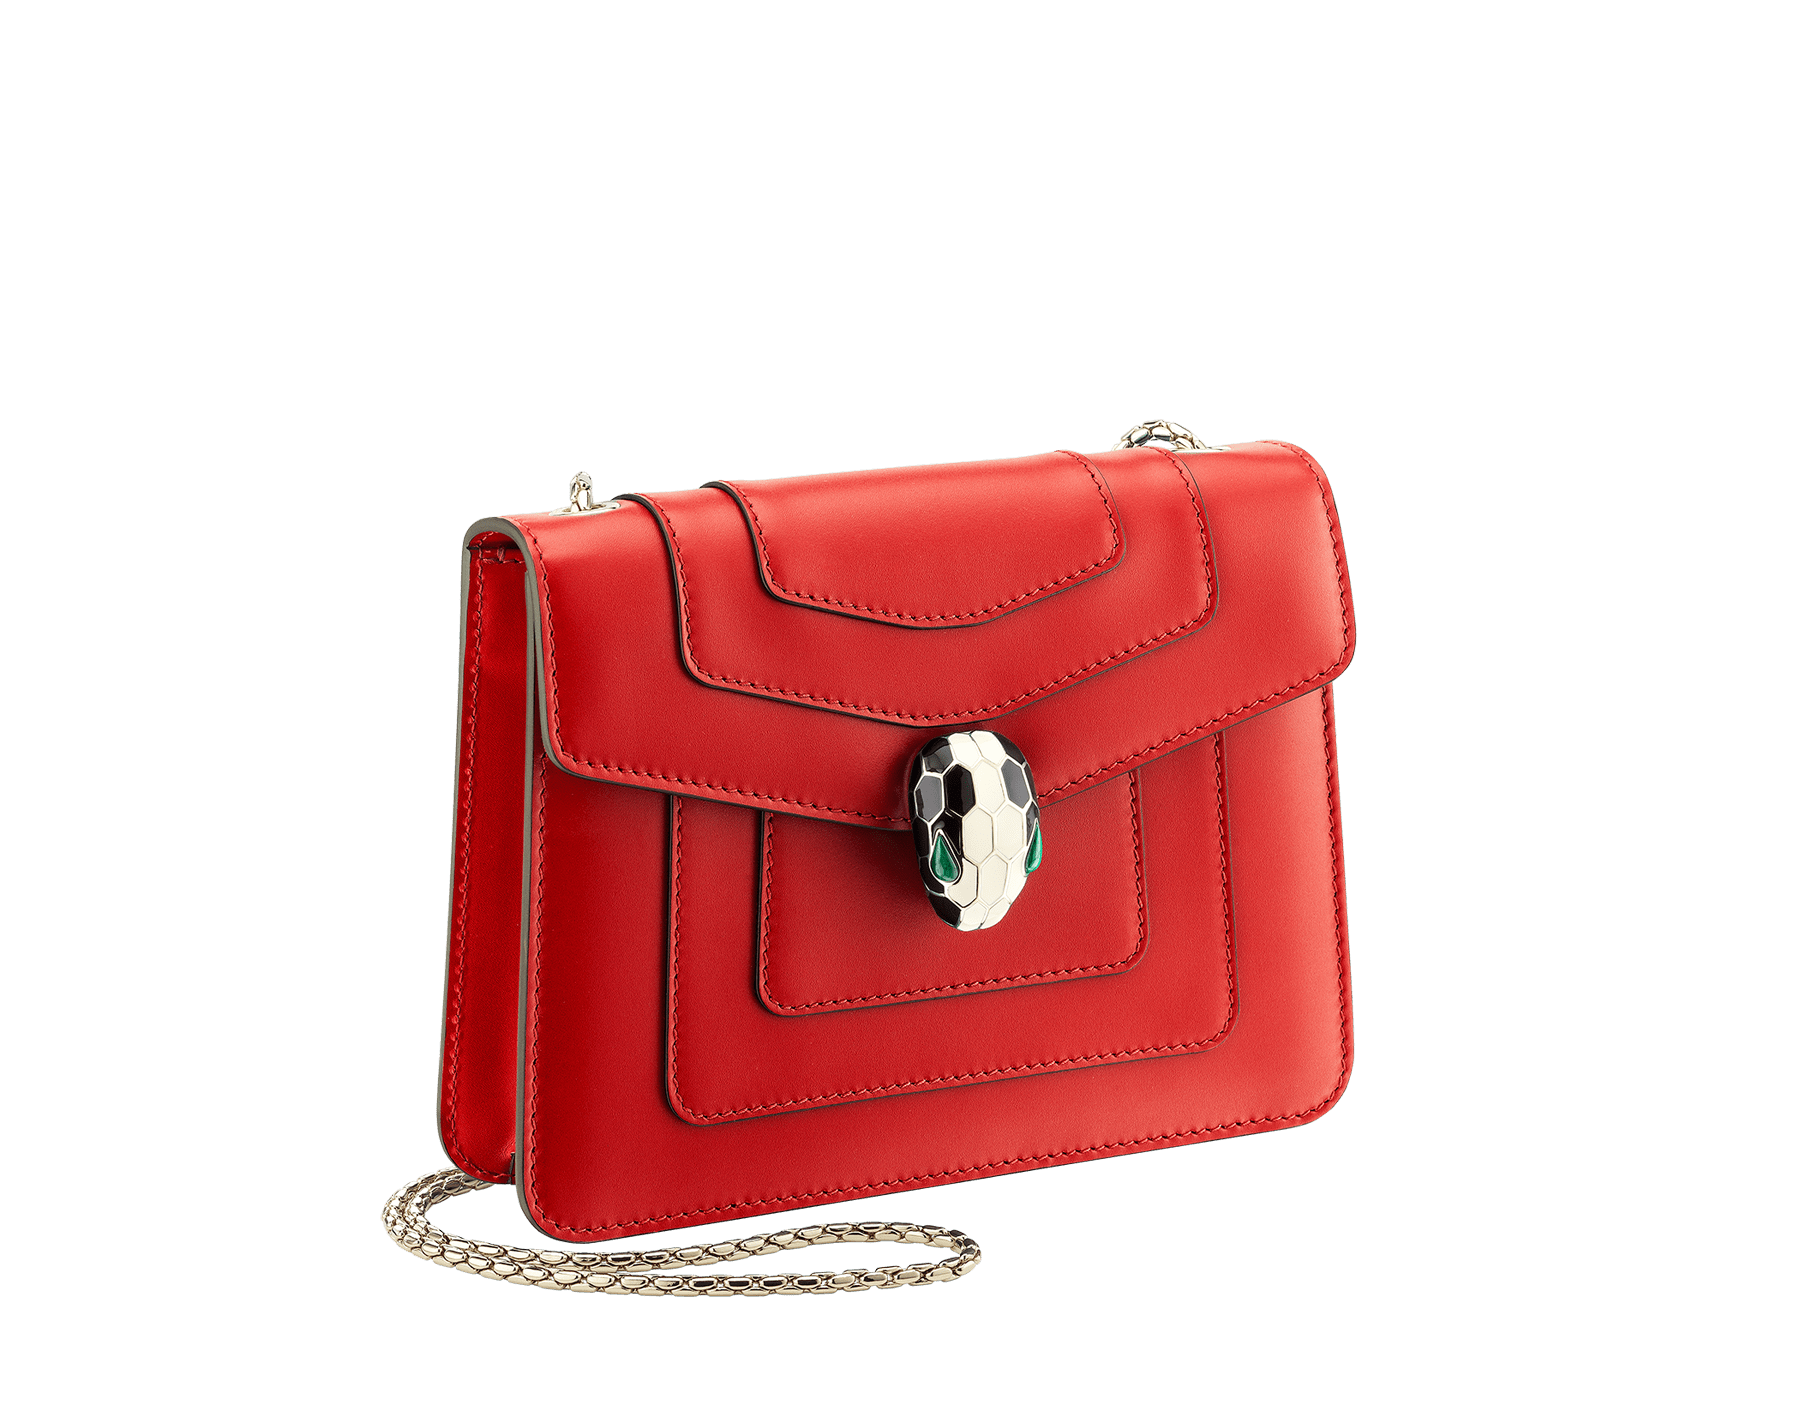 """Serpenti Forever "" crossbody bag in carmine jasper calf leather. Iconic snakehead closure in light gold plated brass enriched with black and white enamel and green malachite eyes 287013 image 2"